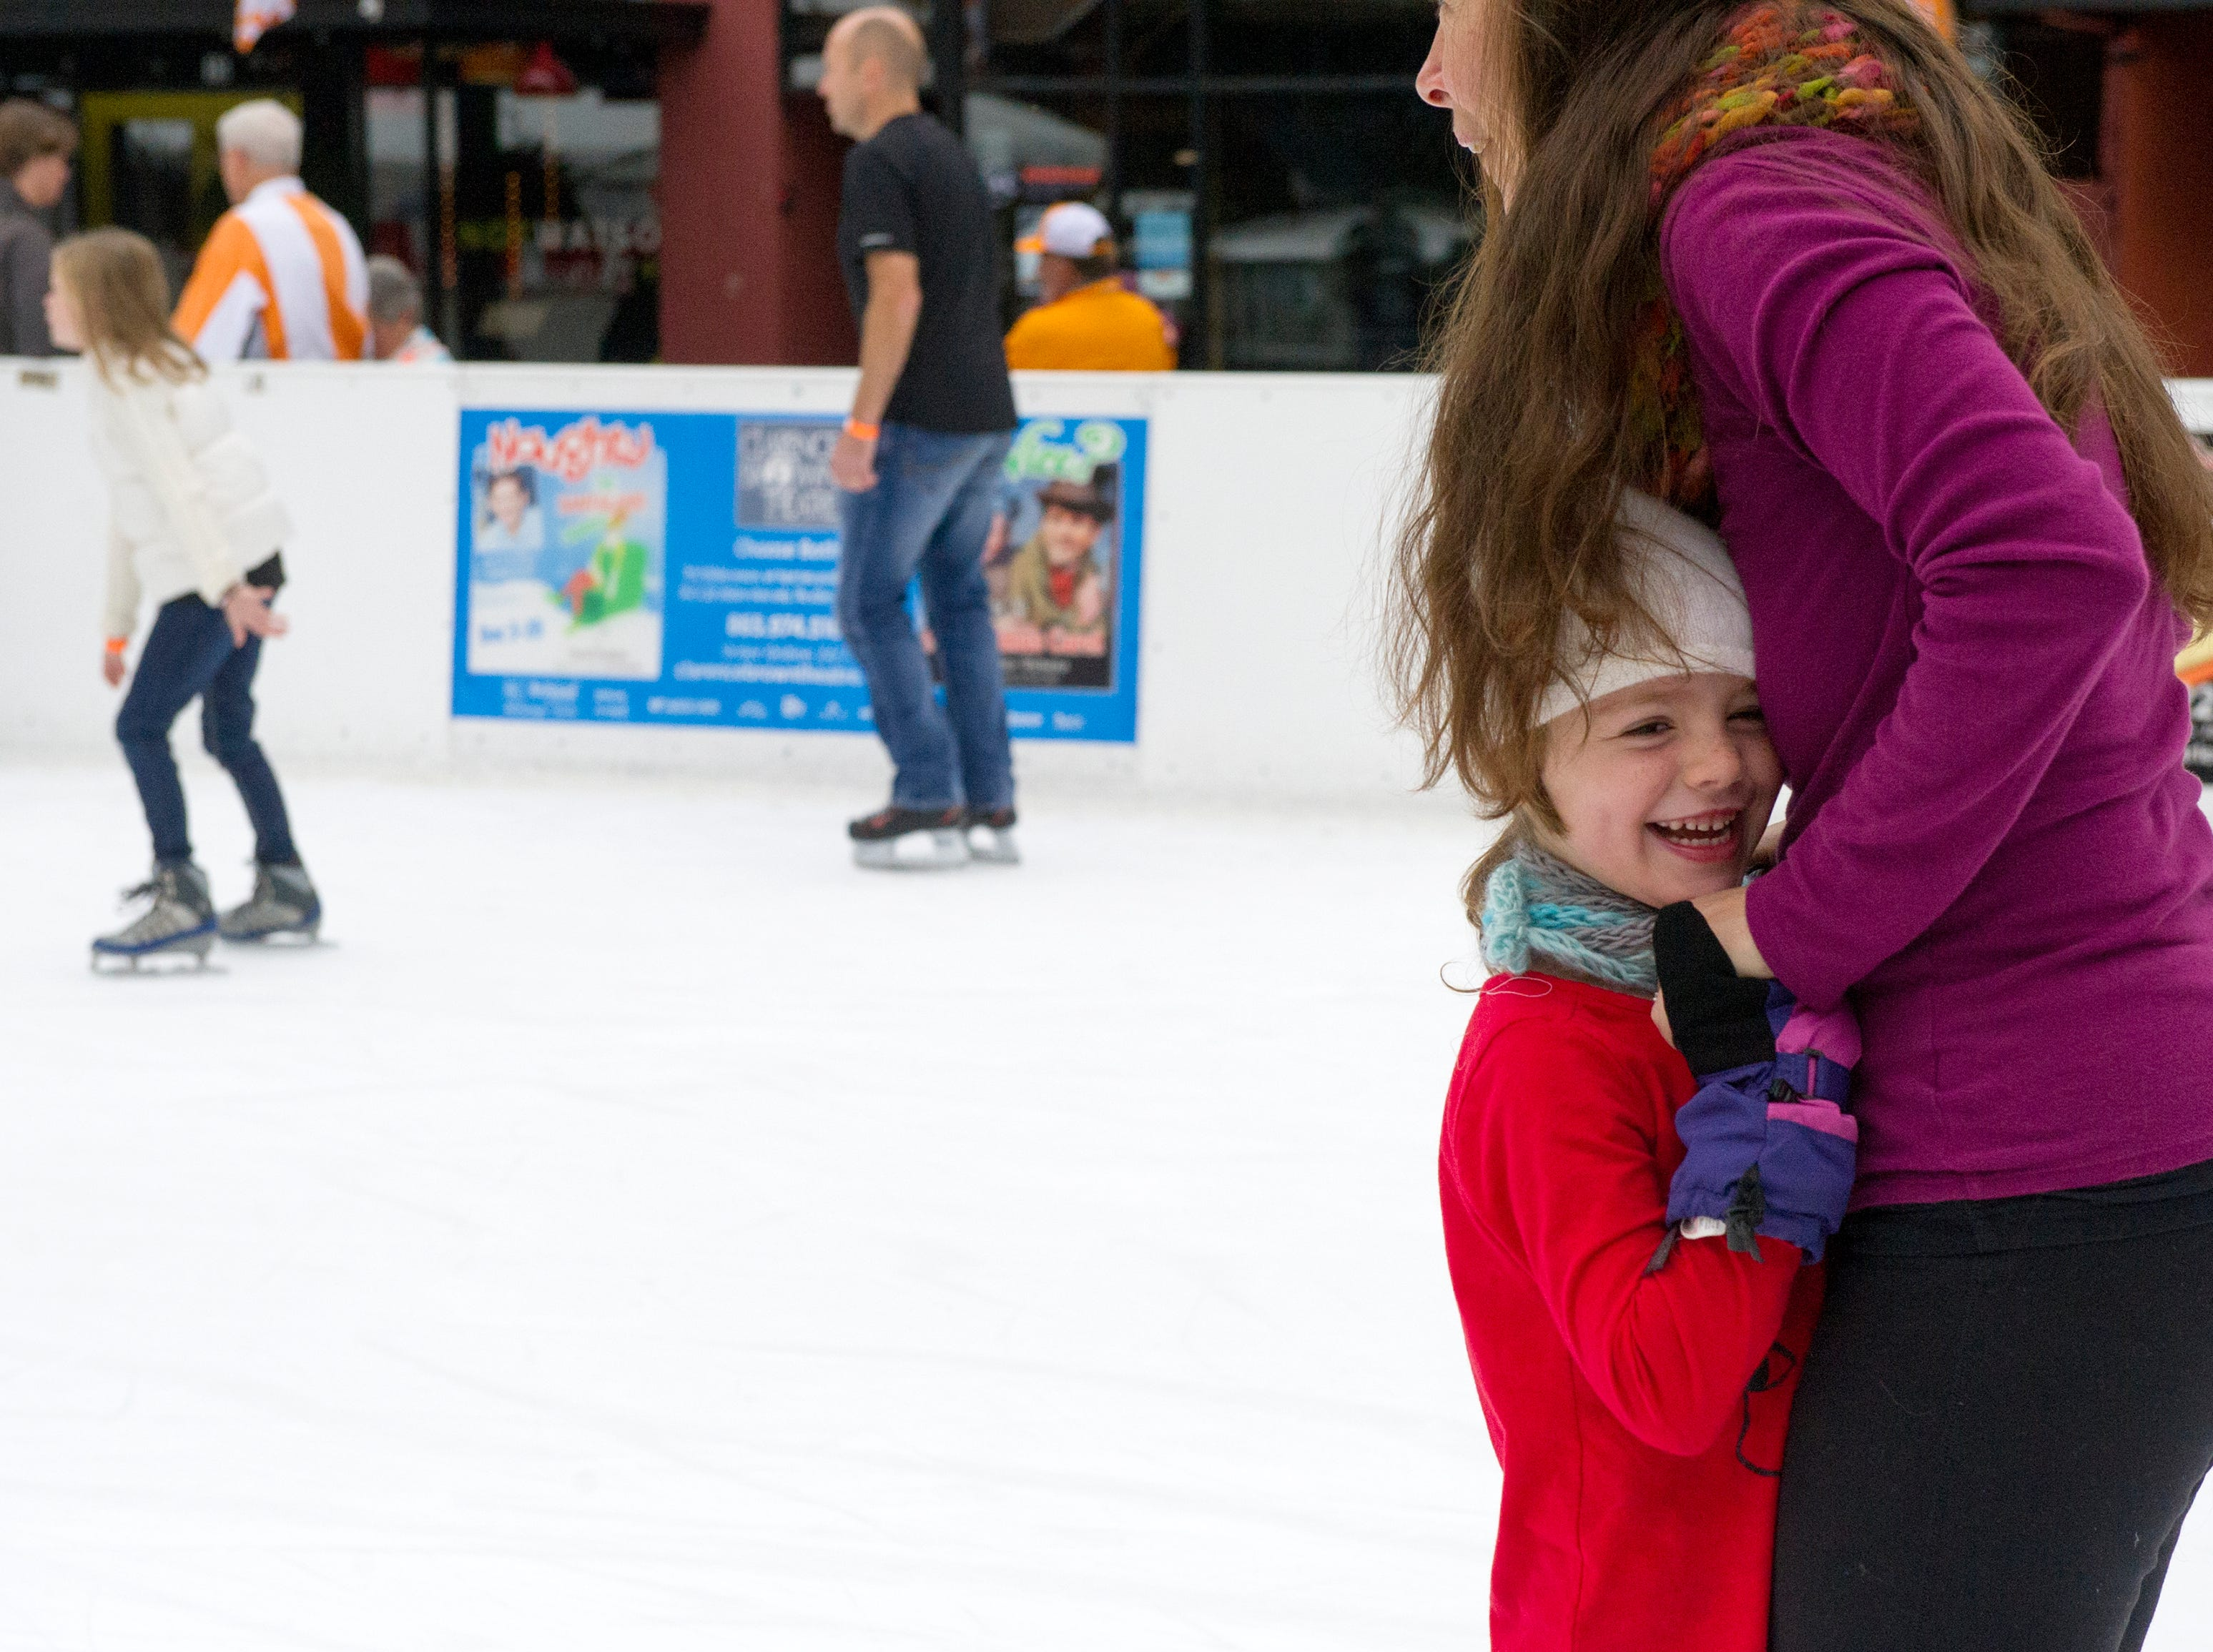 Liv Brace, 5, hugs her mom Gina Brace of Knoxville while learning how to skate during opening weekend for the Market Square ice skating rink Saturday, Nov. 28, 2015.